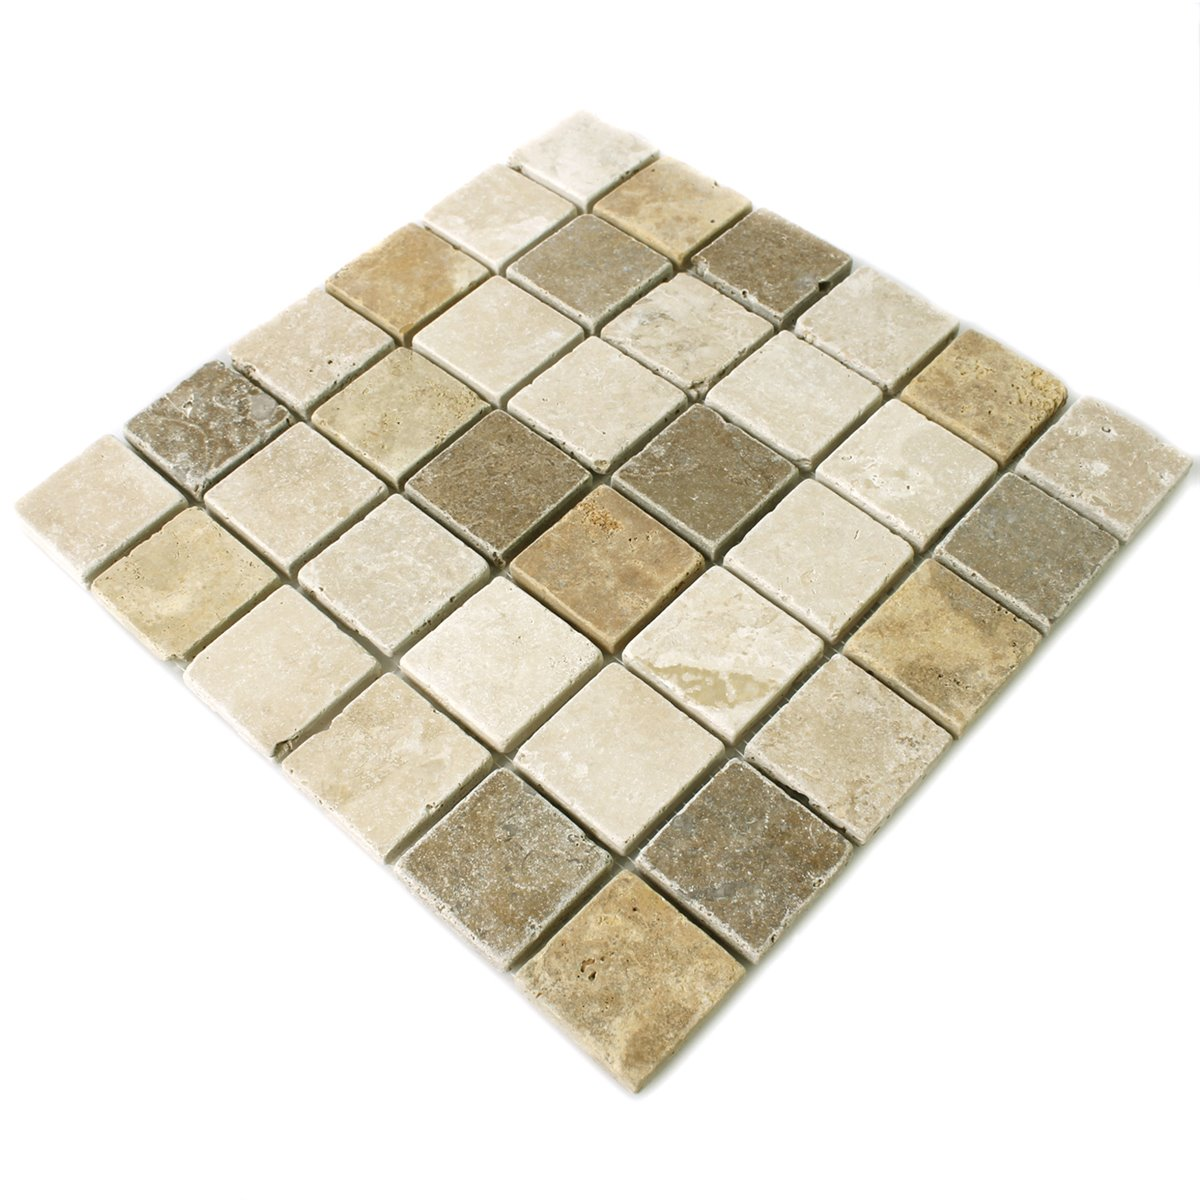 Travertin fliesen braun beige rot 48x48x10mm tt010kns m for Fliesen beige